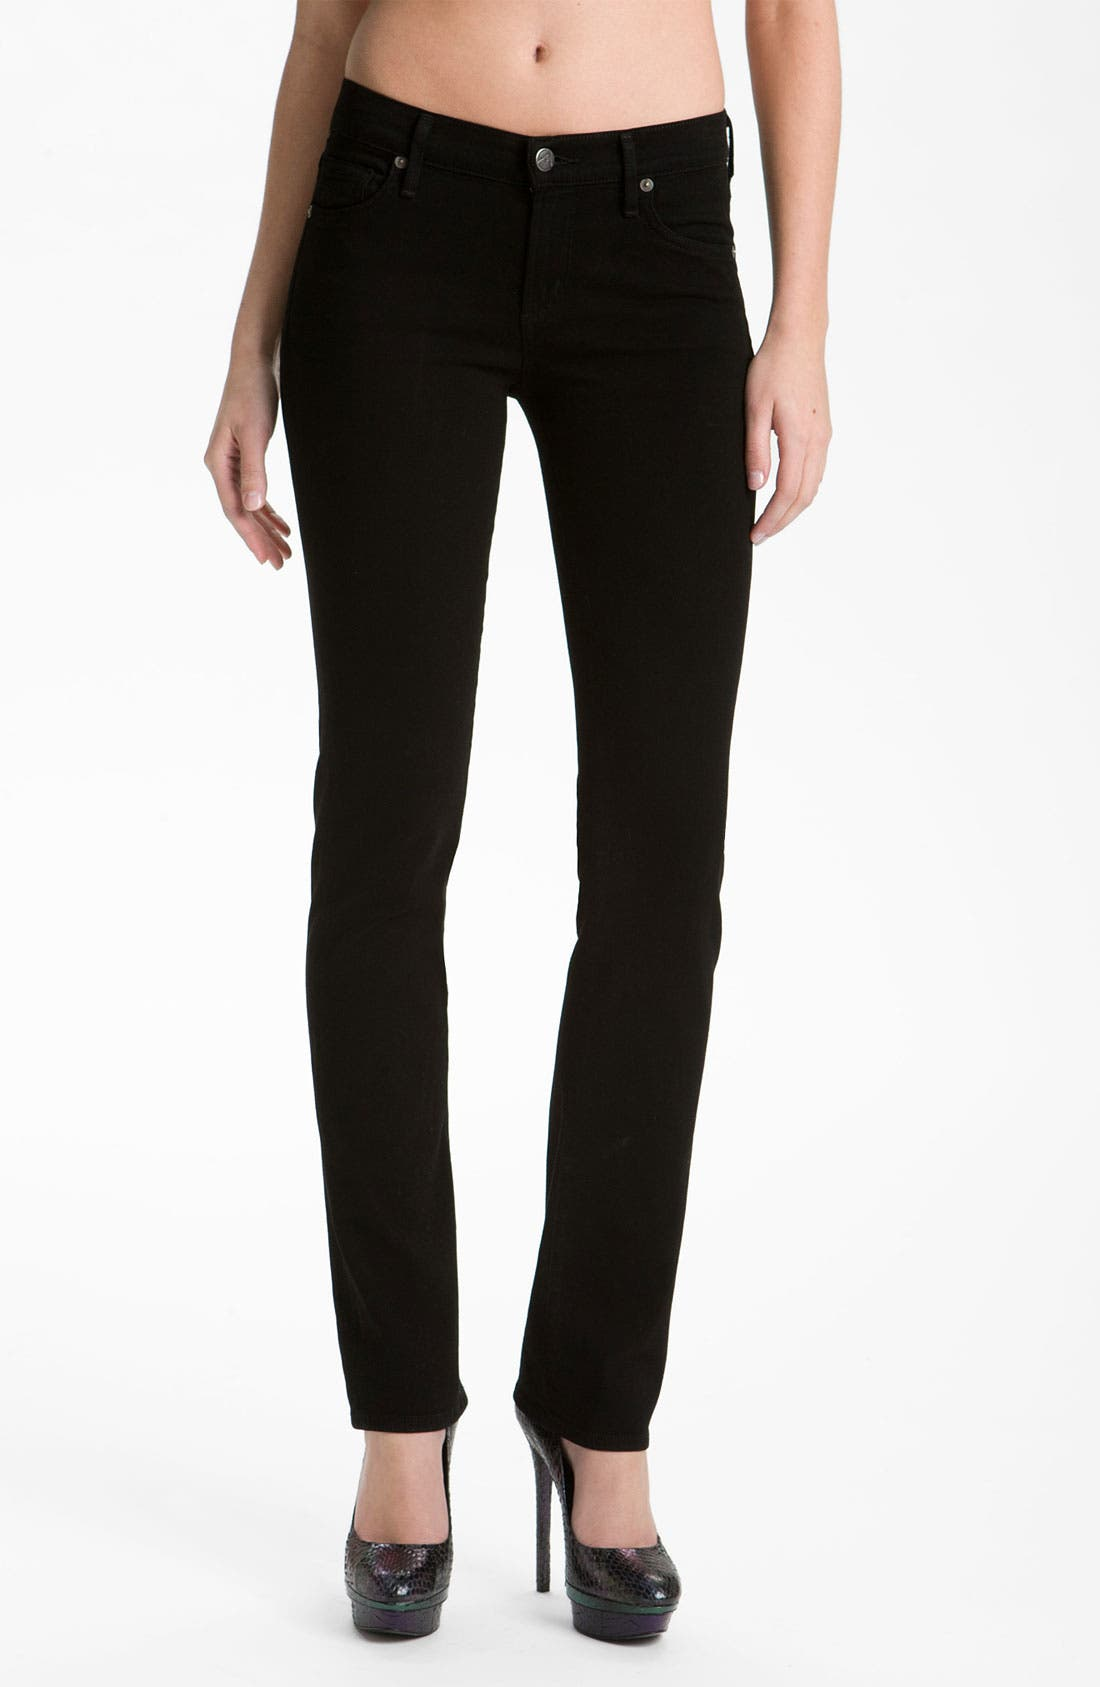 Main Image - Citizens of Humanity 'Ava' Straight Leg Stretch Jeans (Vamp Black) (Online Exclusive)